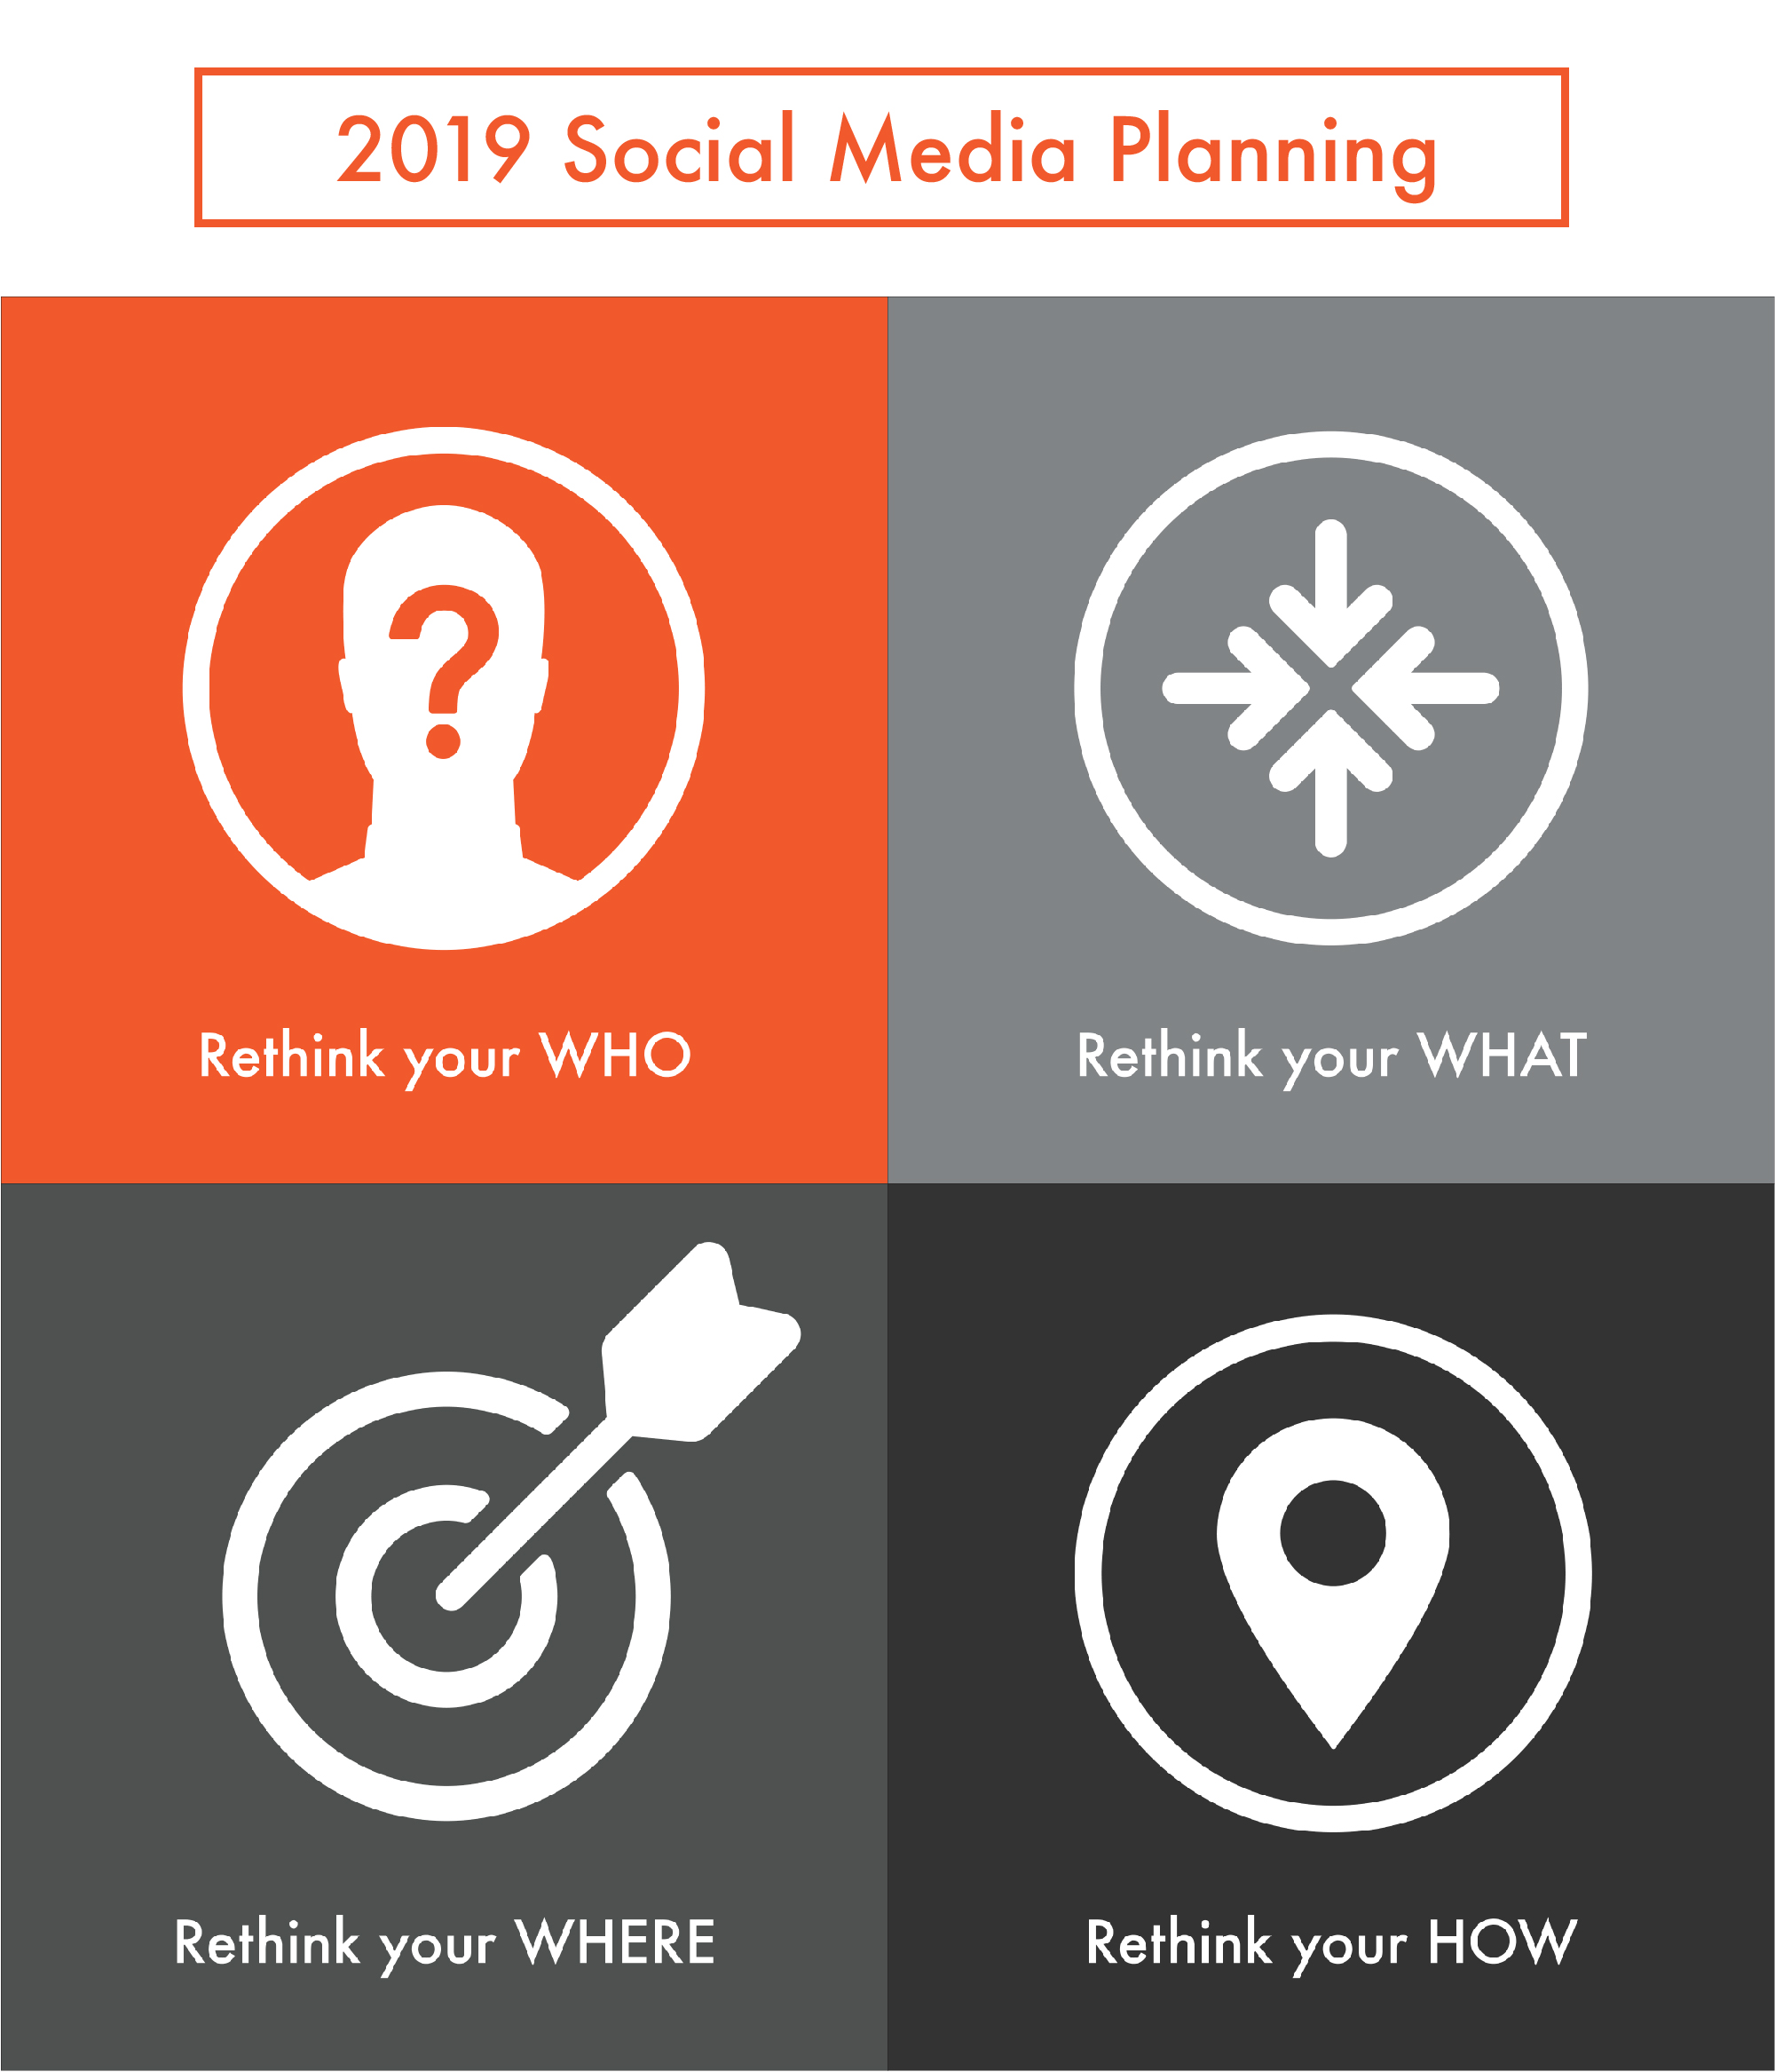 SocialTrends_Dec2018-17.jpg